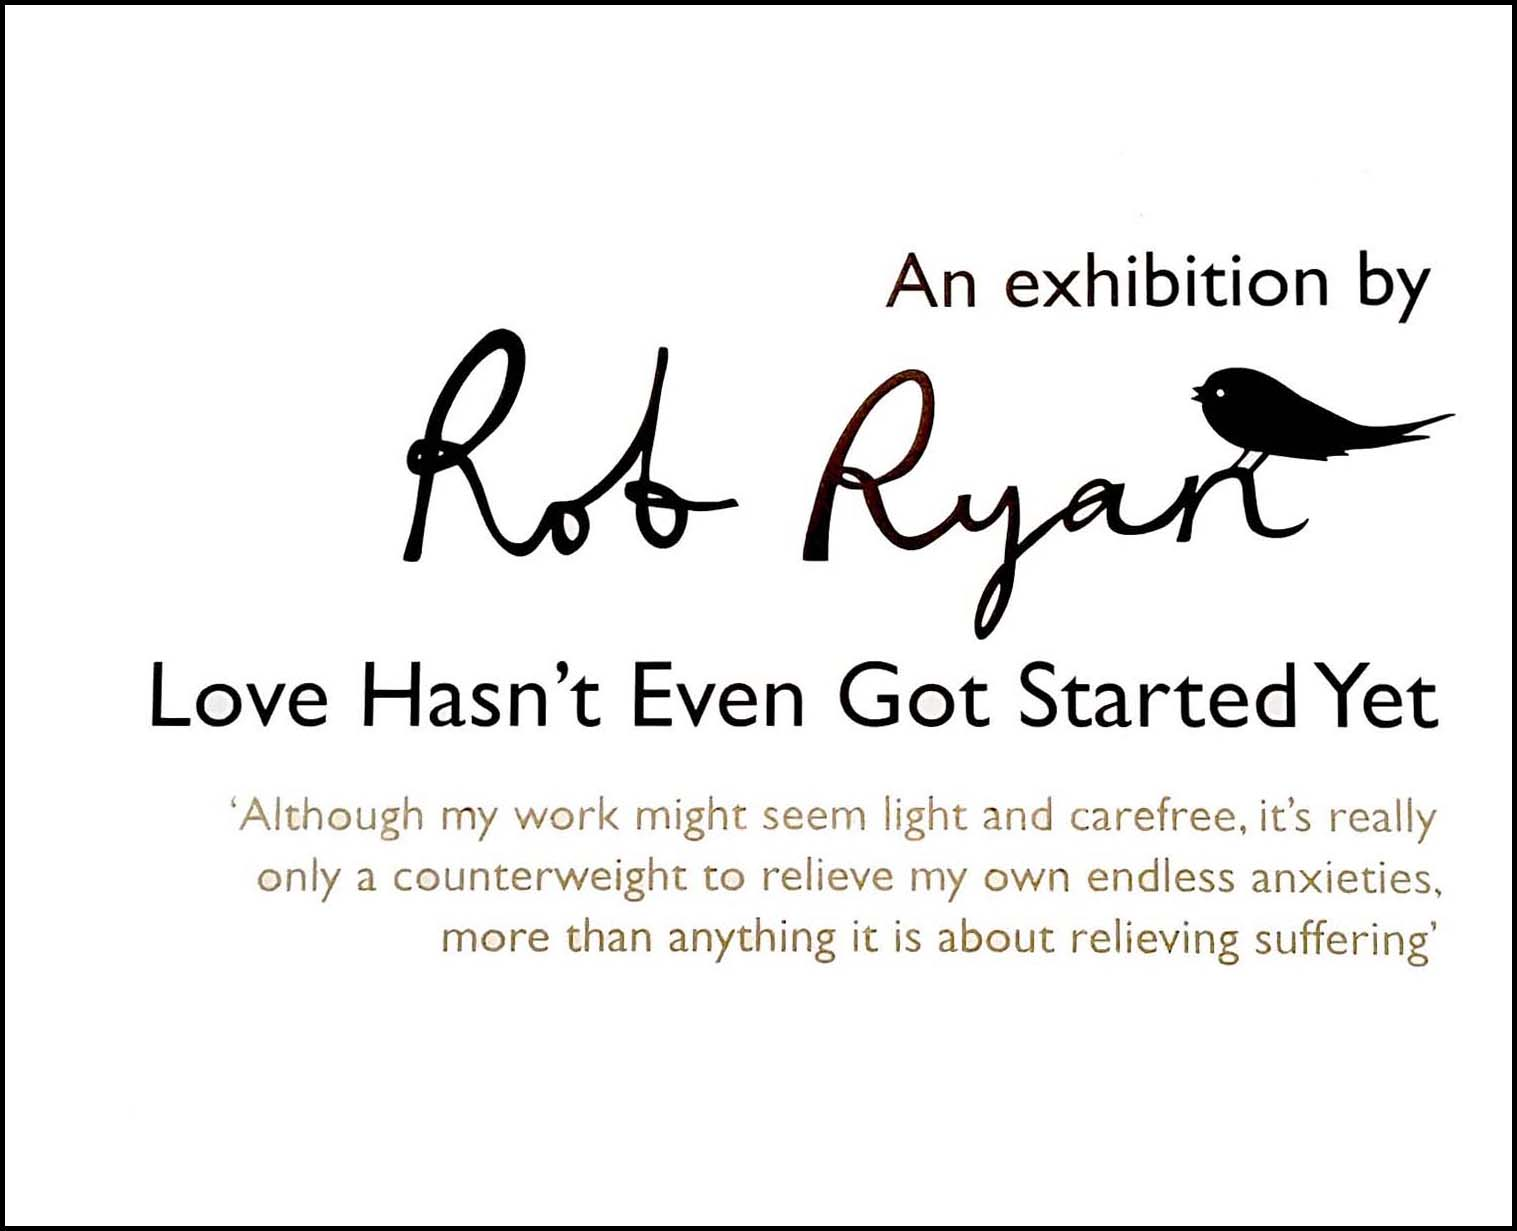 Rob Ryan 'Love Hasn't Even Got Started Yet', Park Gallery, Falkirk